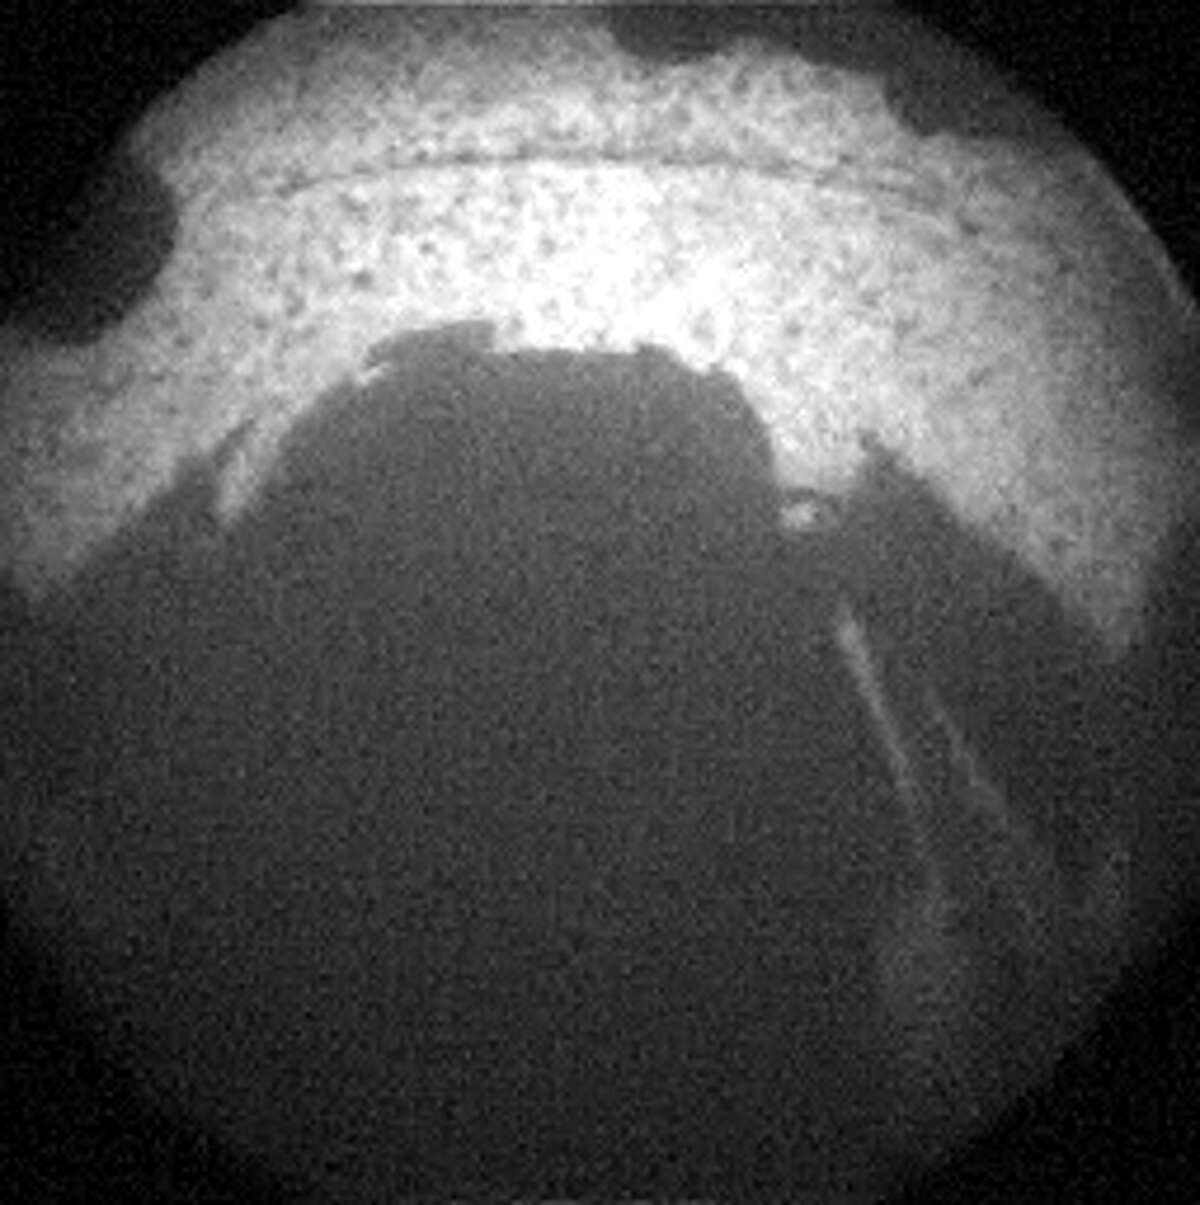 This is one of the first images taken by NASA's Curiosity rover, which landed on Mars early Monday, Aug. 6, 2012, CT. It was taken through a